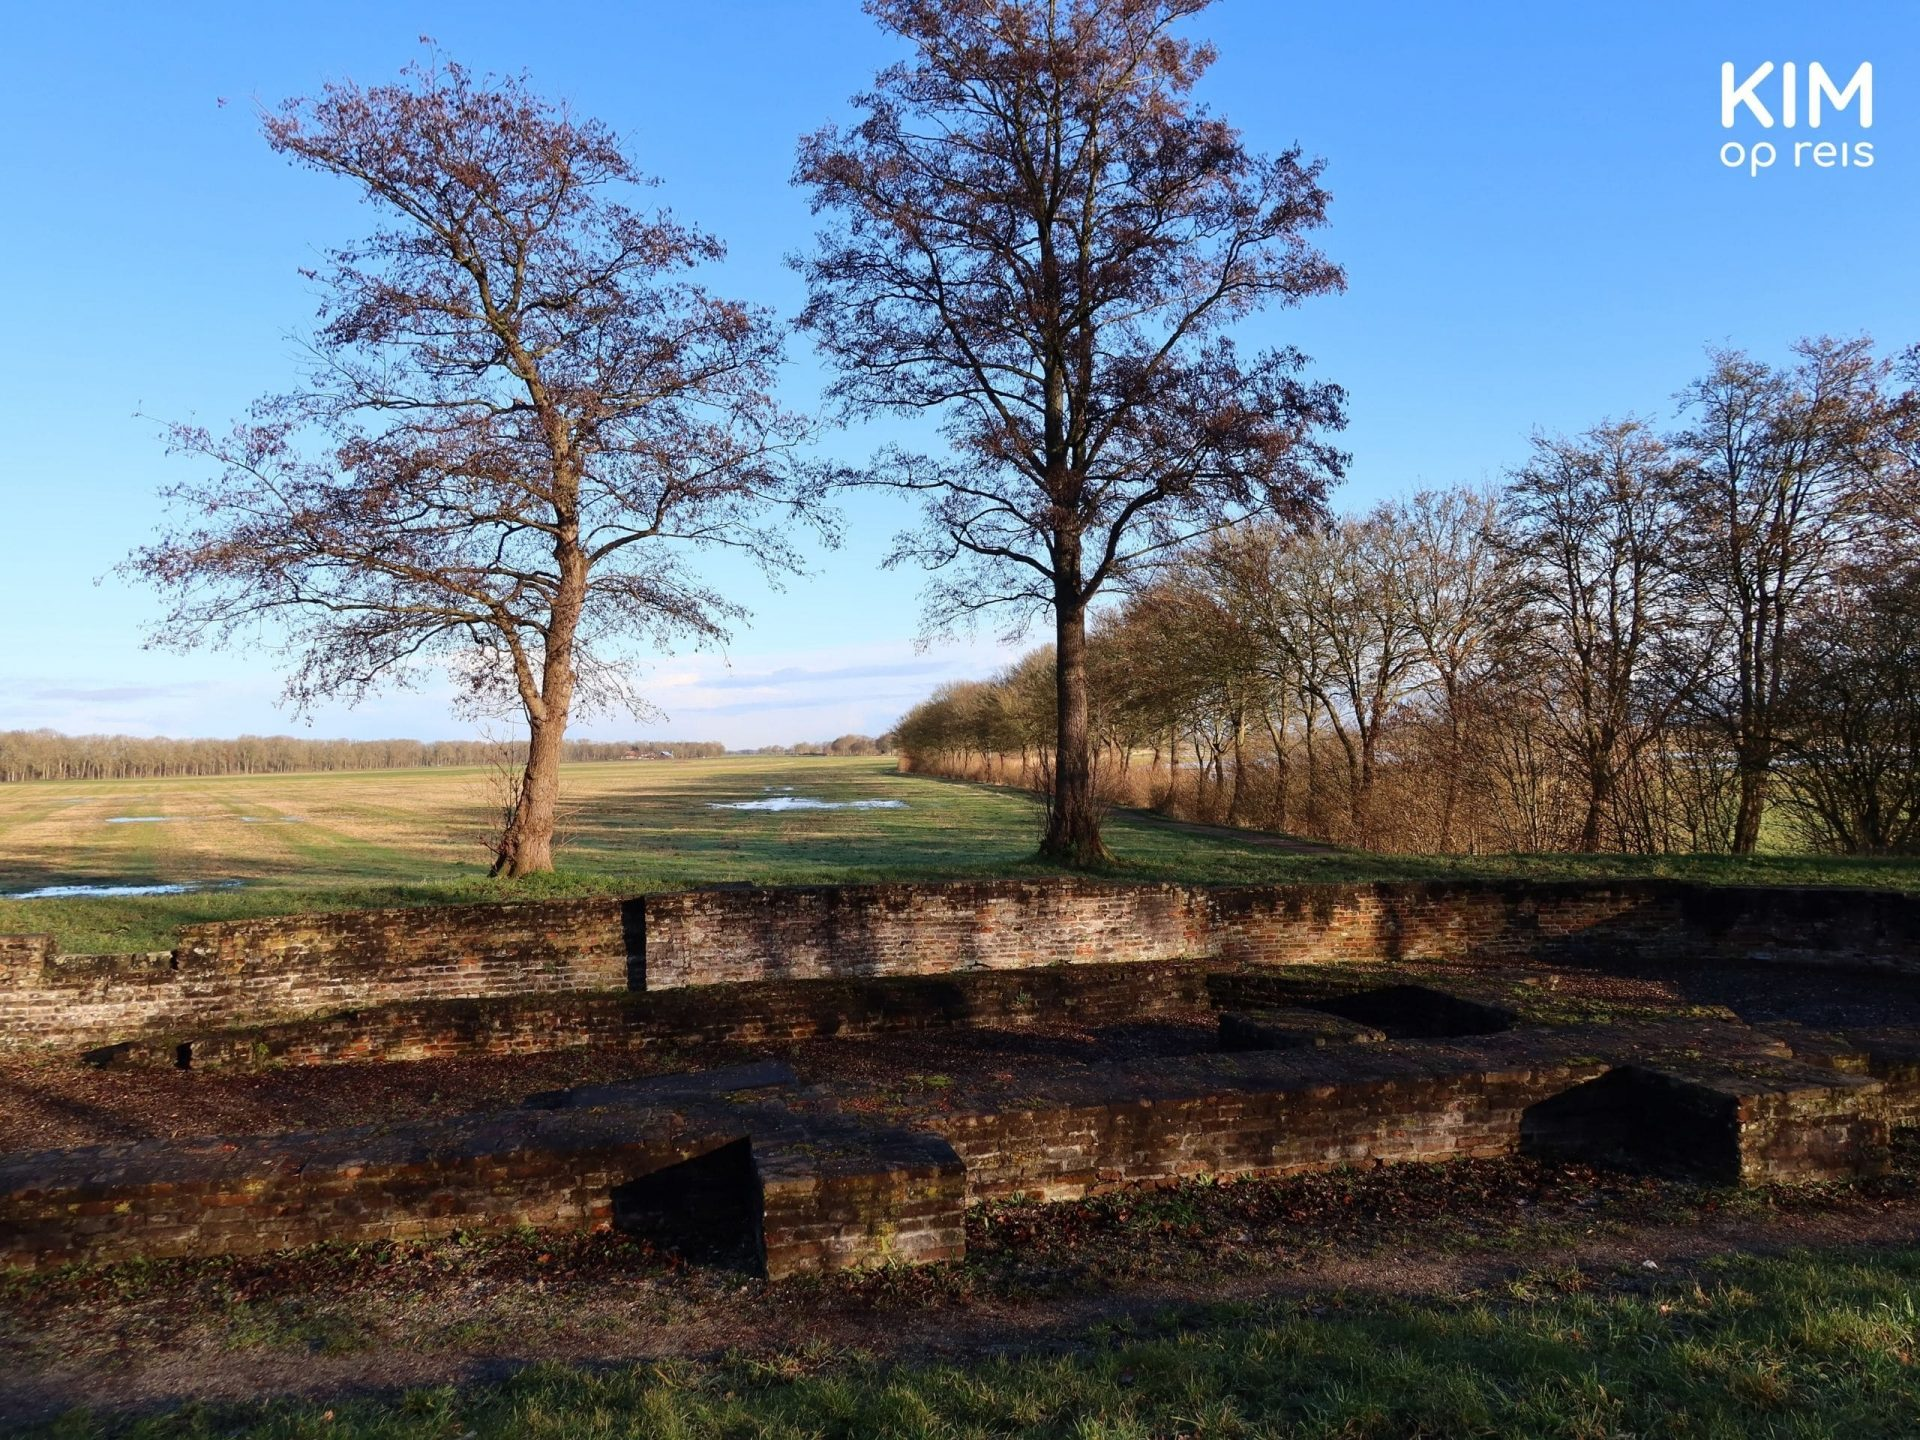 Schokland church ruin: extensive landscape with the foundations of the church walls in the foreground